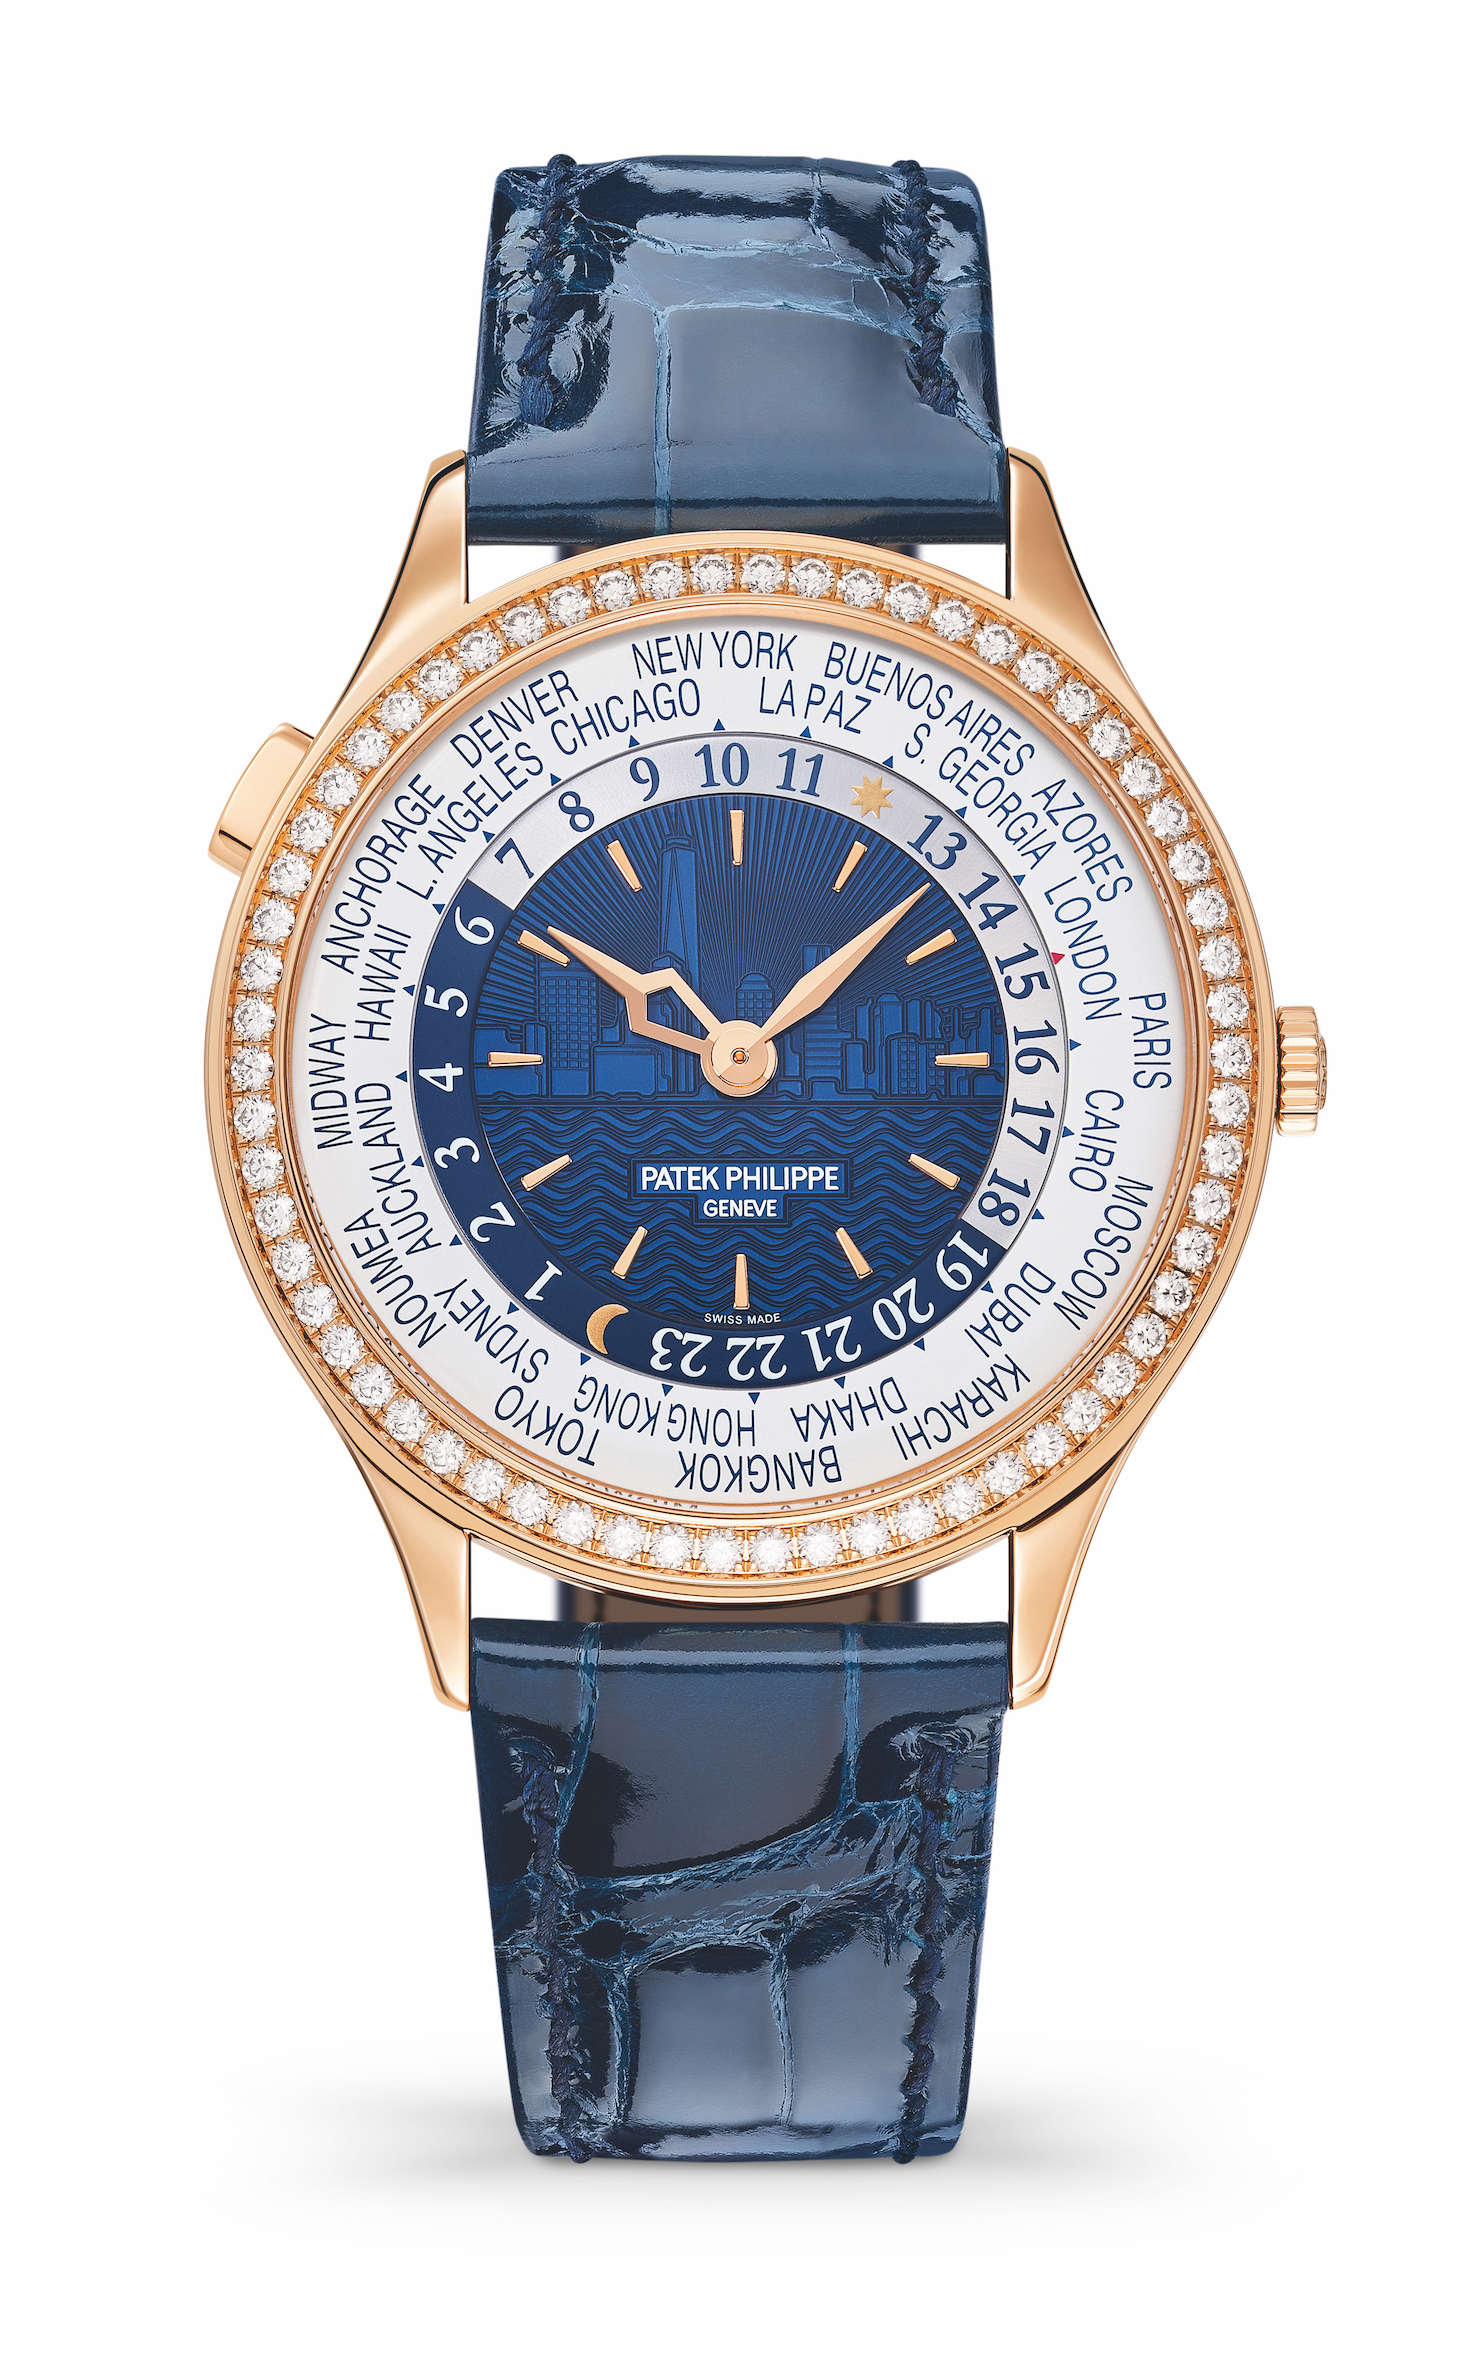 Patek Philippe Ladies' World Time Ref. 7130 New York 2017 Special Edition